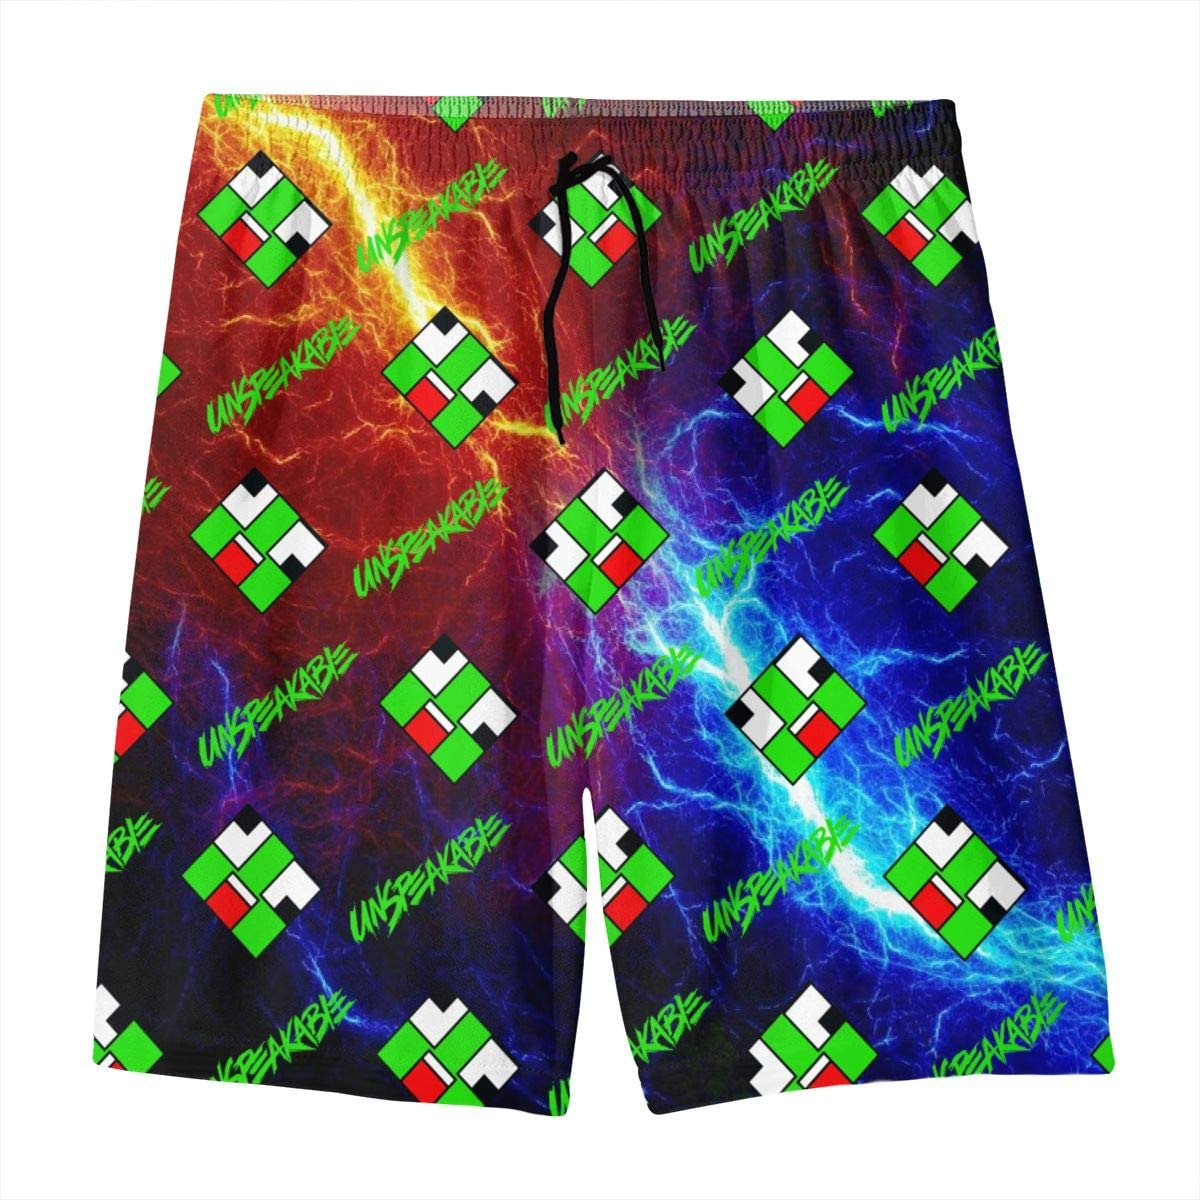 Mucup Youth Board Shorts Quick Dry Kid Swim Trunks Boys Bathing Suits